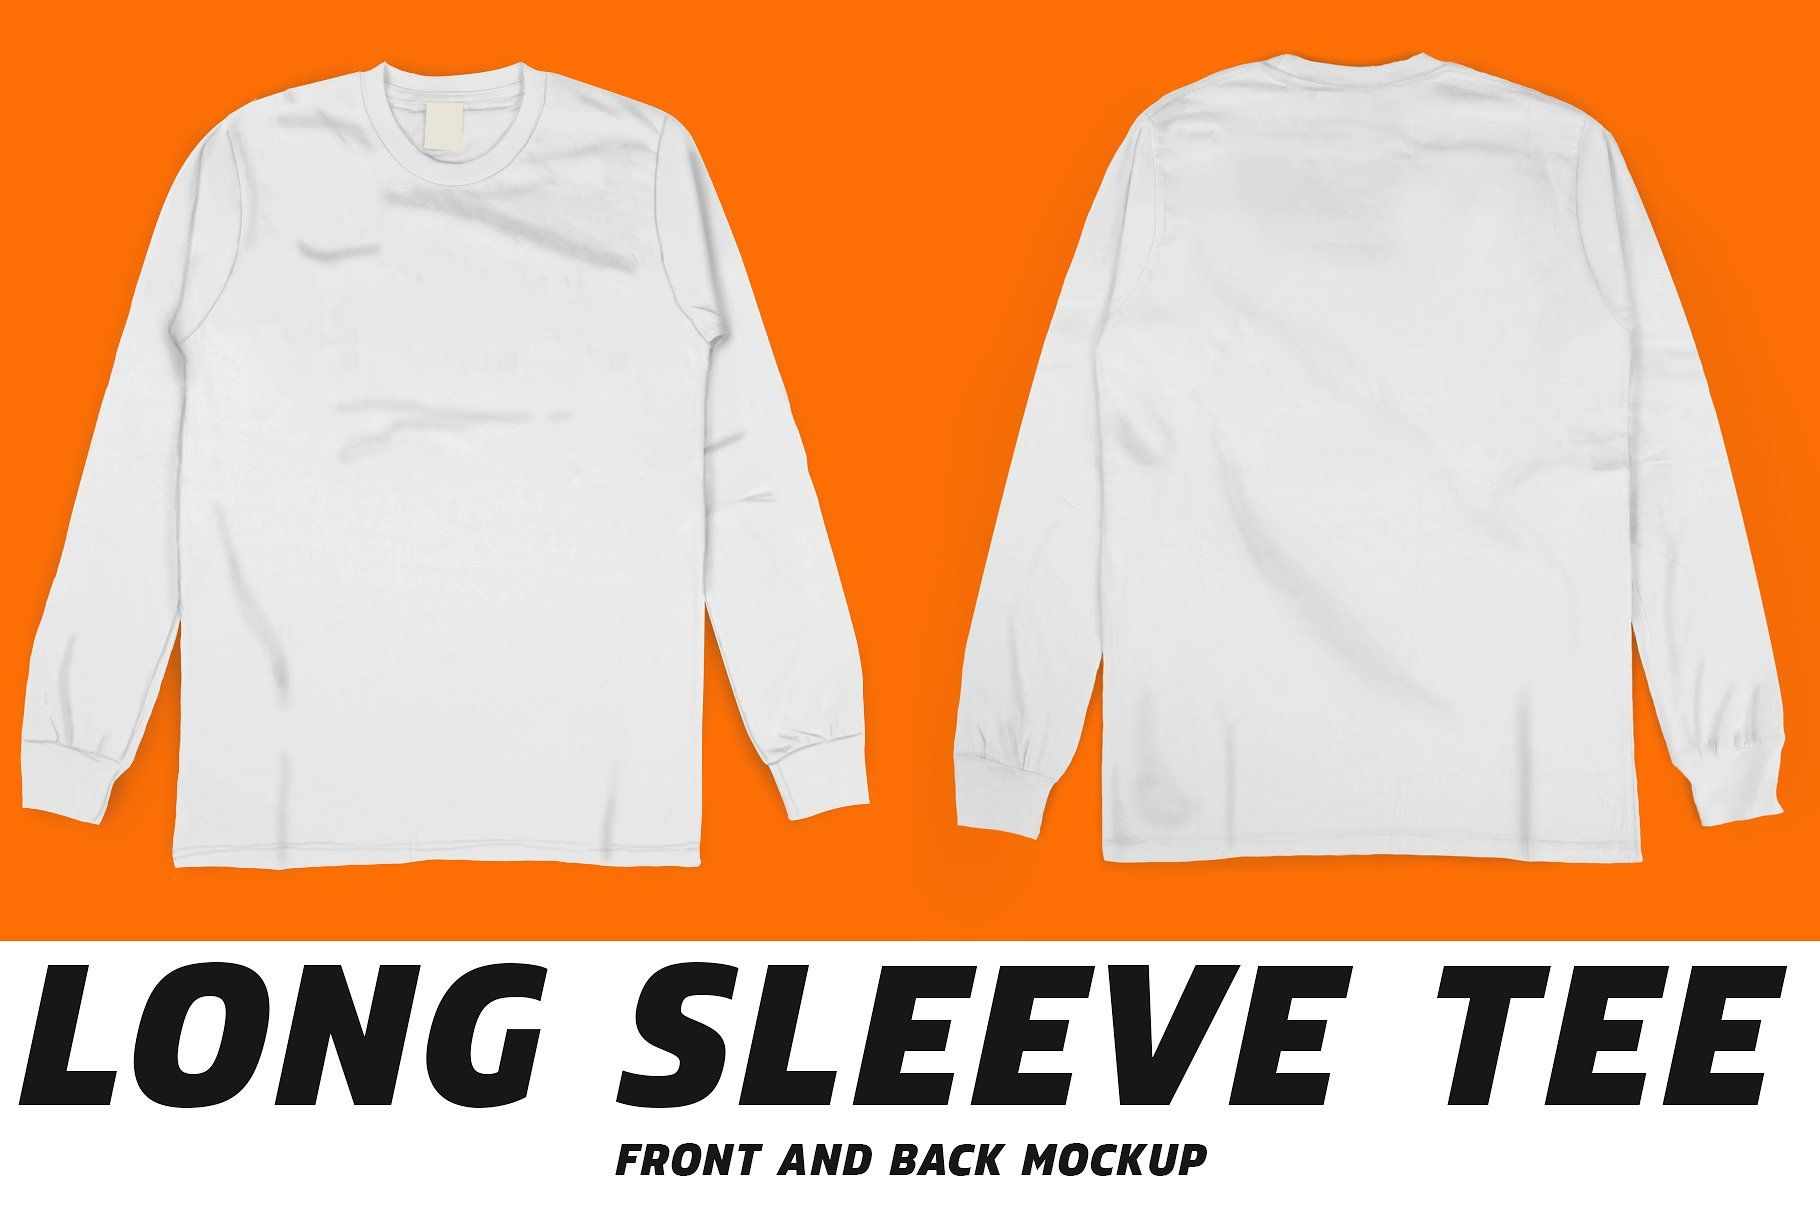 Download Long Sleeve Tee Mock Up Gambar Digital Desain Gambar